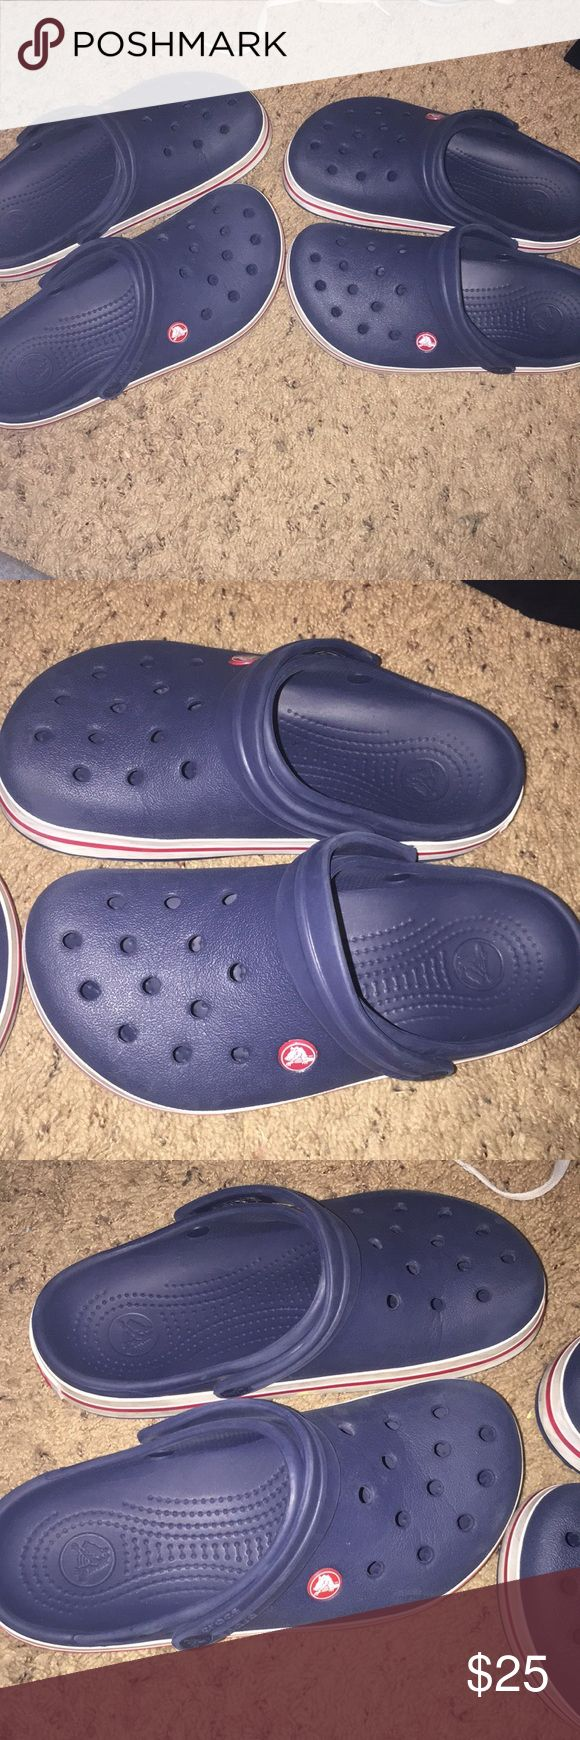 Navy blue crocs!!!! 2 different pairs!!! Both in great condition, $13 each or 25 for both CROCS Shoes Mules & Clogs